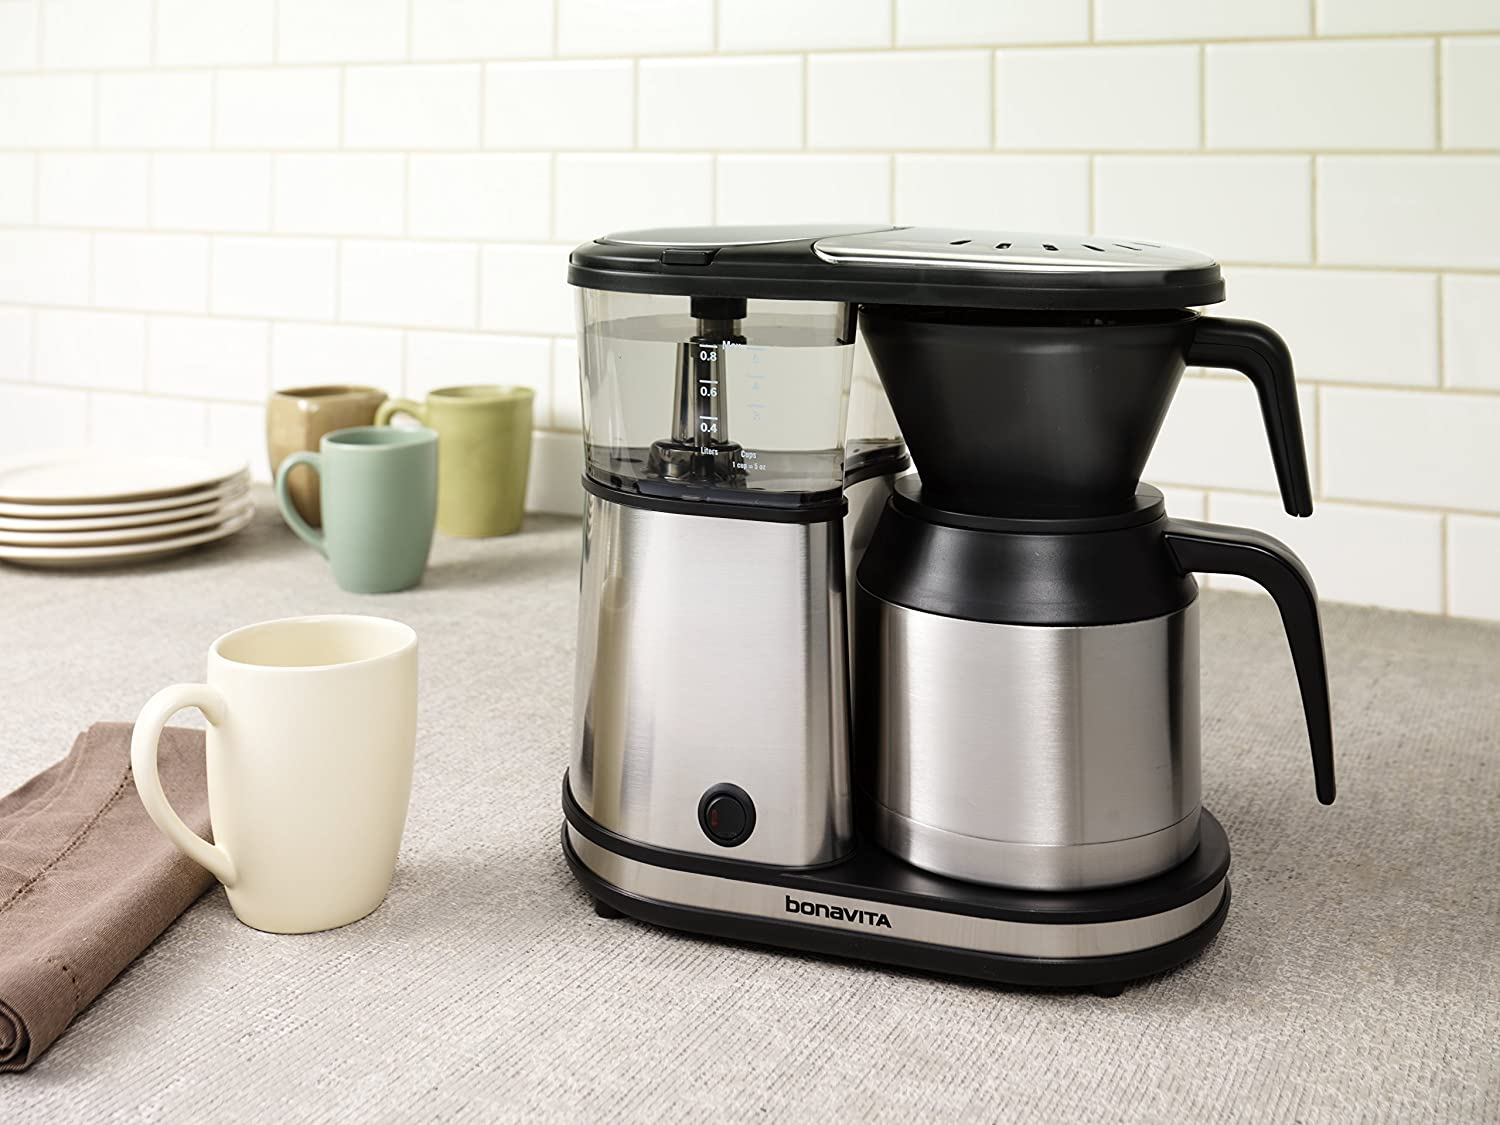 Bonavita 8 Cup Coffee Maker With Glass Carafe Bv - Amazon com bonavita bv1500ts 5 cup carafe coffee brewer stainless steel kitchen dining